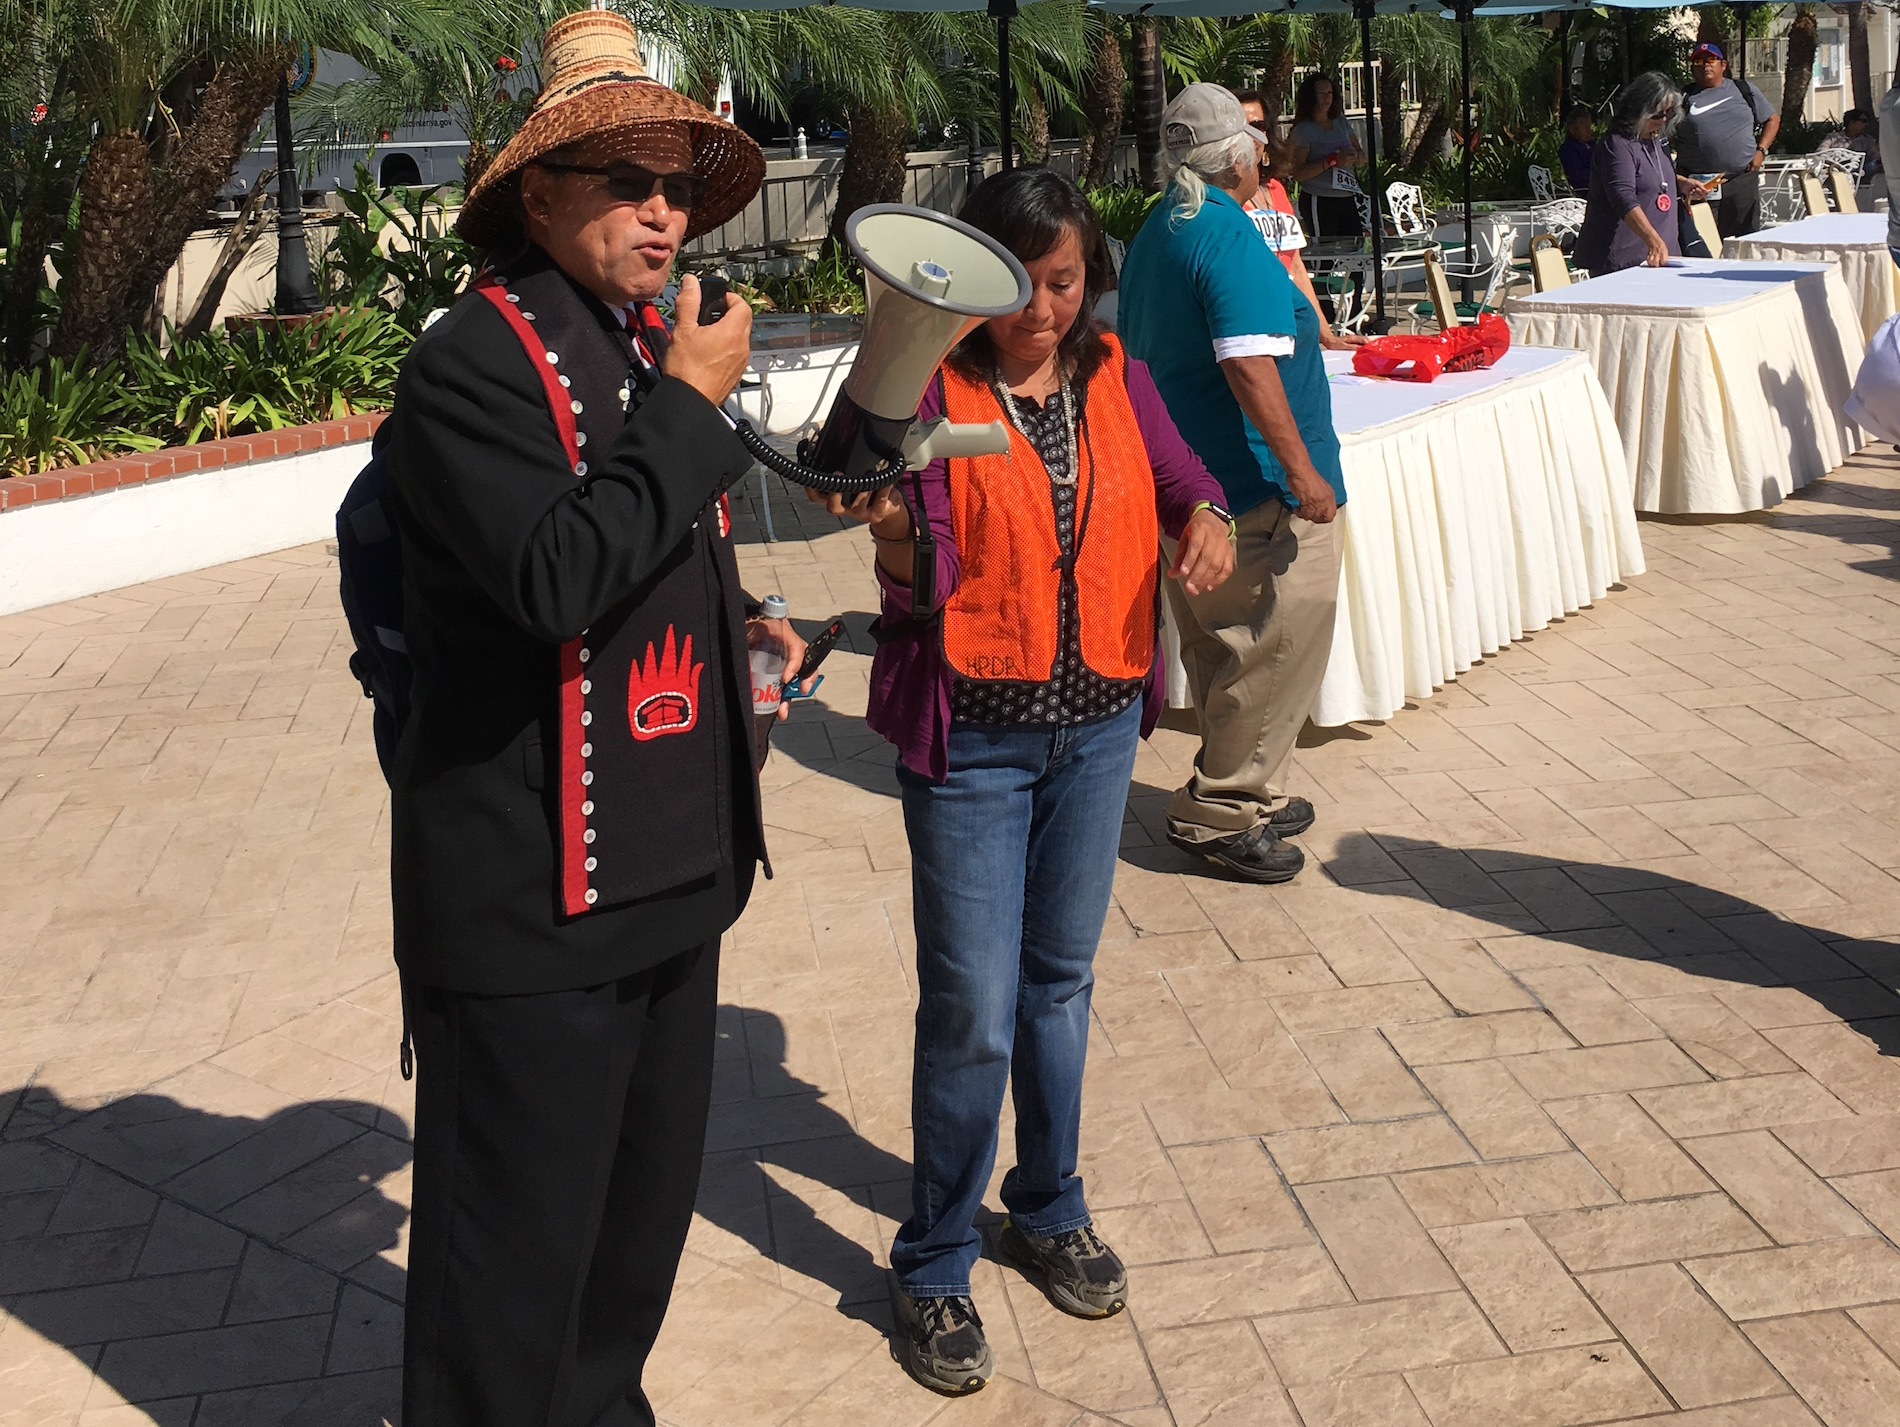 Little election activity at National Congress of American Indians